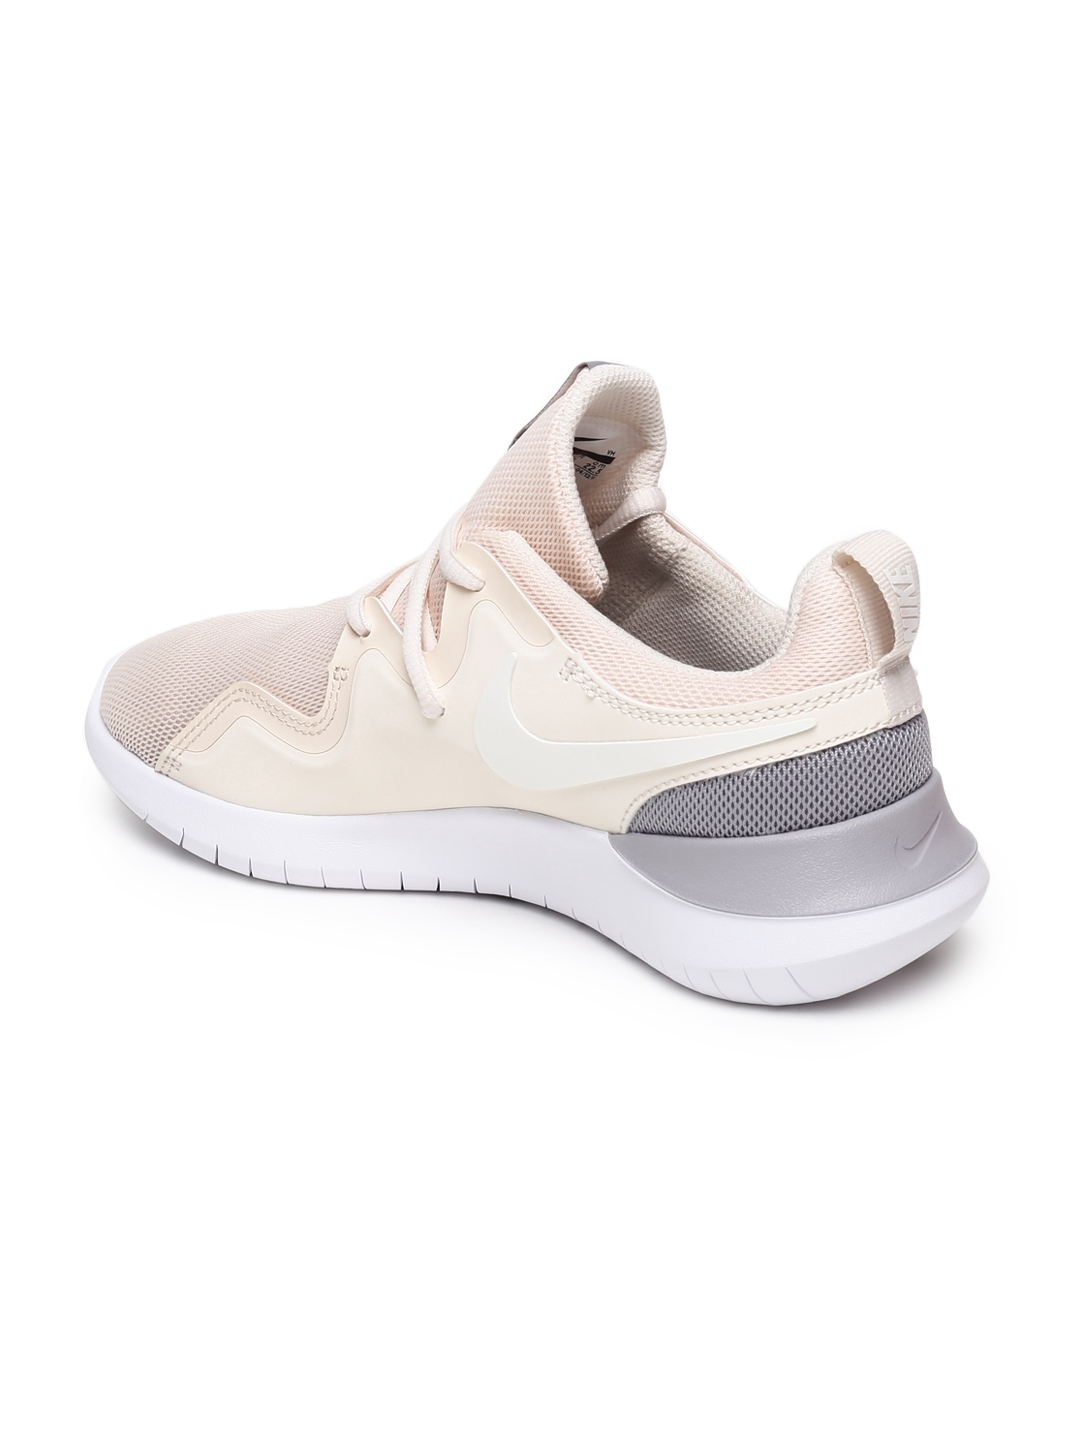 99d0b64f56998 Nike Tessen Run Rose Grey Black White women s running shoes sneakers Source  · Buy Nike Women Pink NIKE TESSEN Training Shoes Sports Shoes for